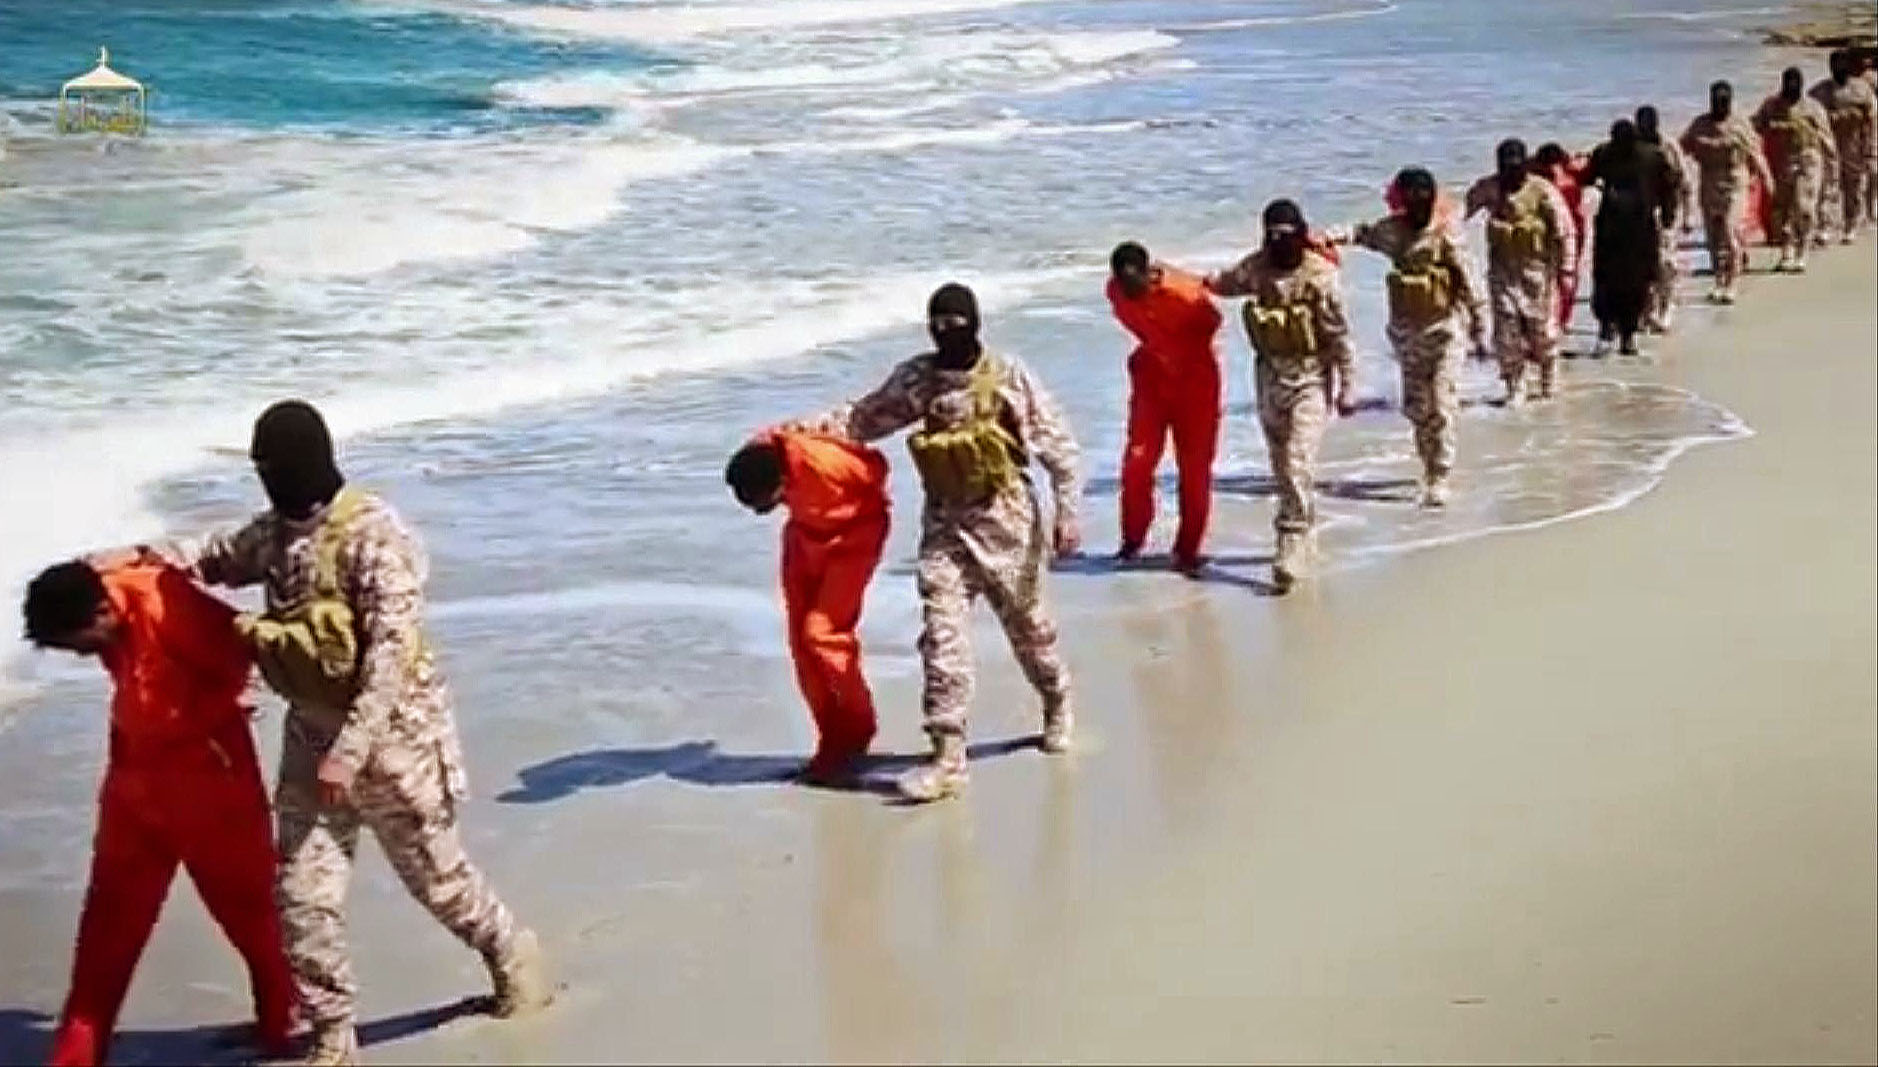 This undated image made from video released by Islamic State militants April 19, 2015, purports to show a group of captured Ethiopian Christians taken to a beach before being executed.